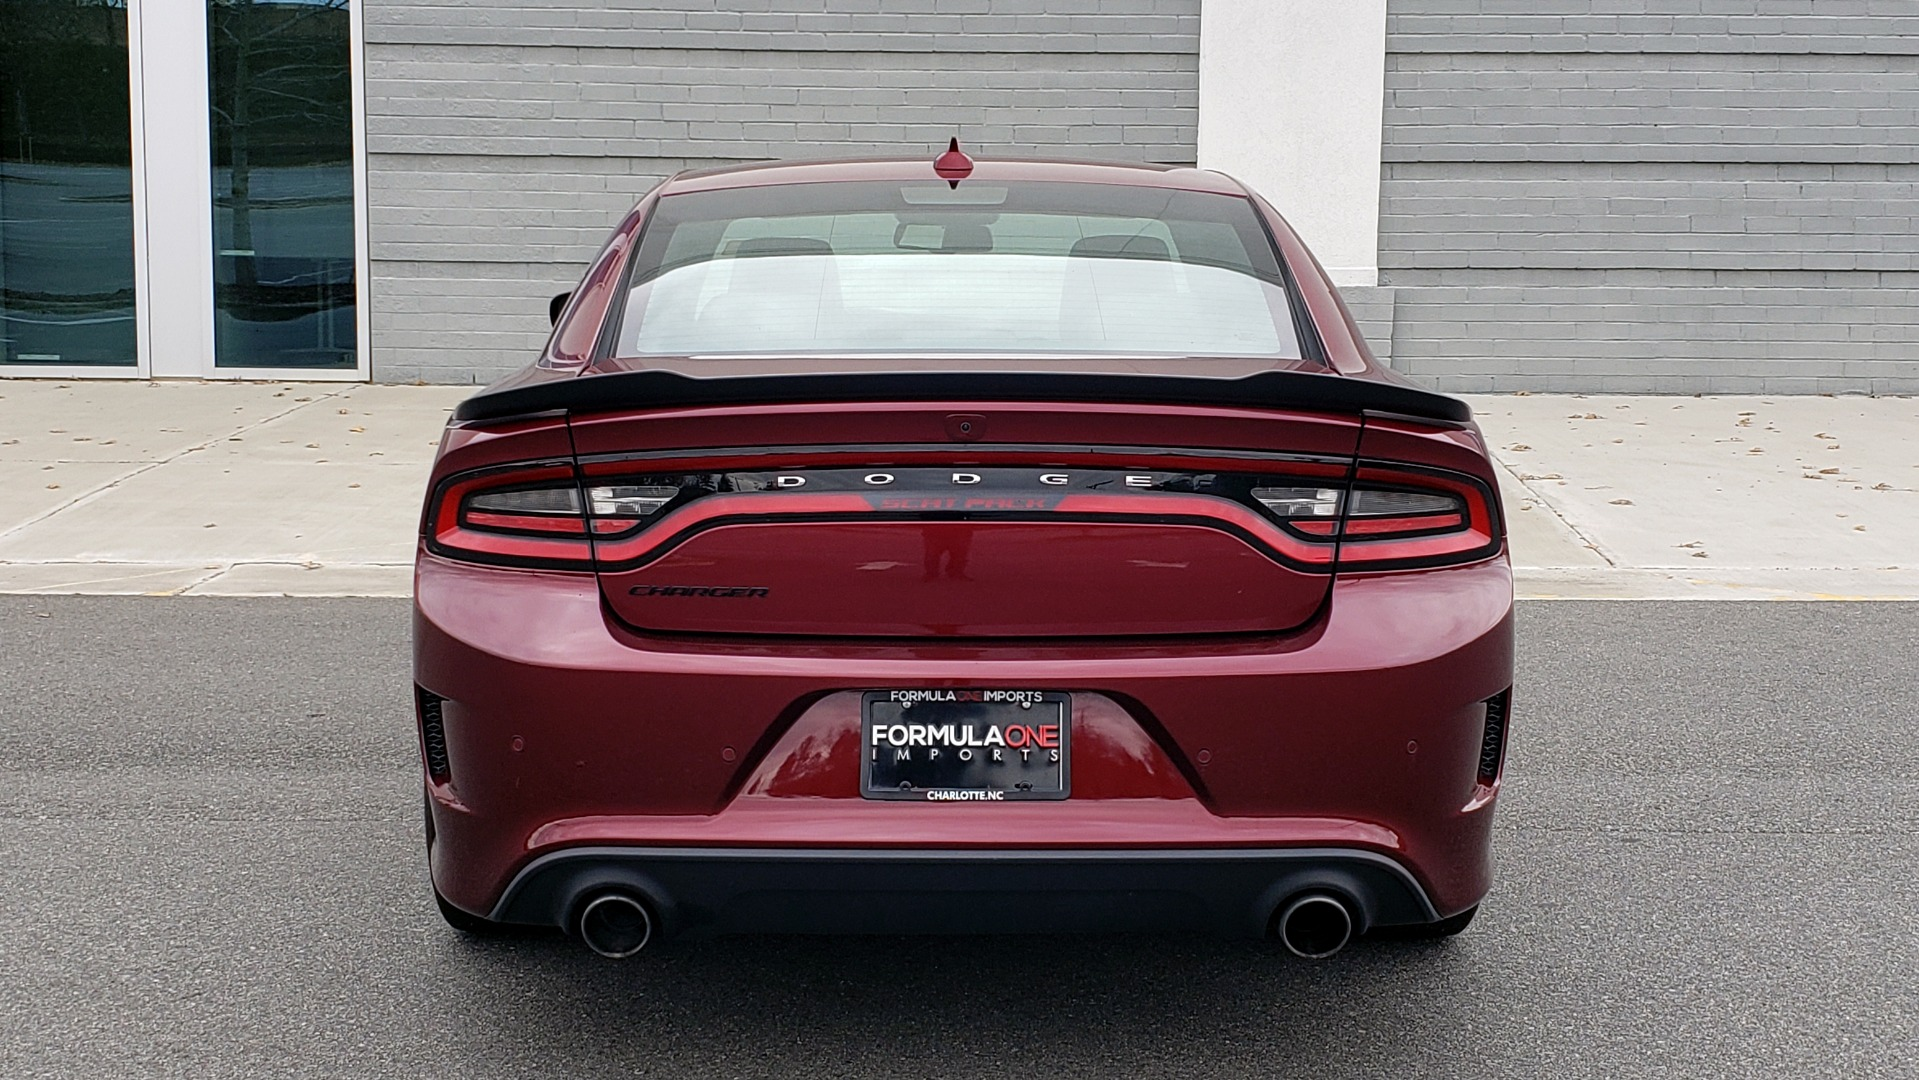 Used 2018 Dodge CHARGER R/T SCAT PACK / 6.4L 485HP / 8-SPD AUTO / HEATED / REARVIEW for sale Sold at Formula Imports in Charlotte NC 28227 31